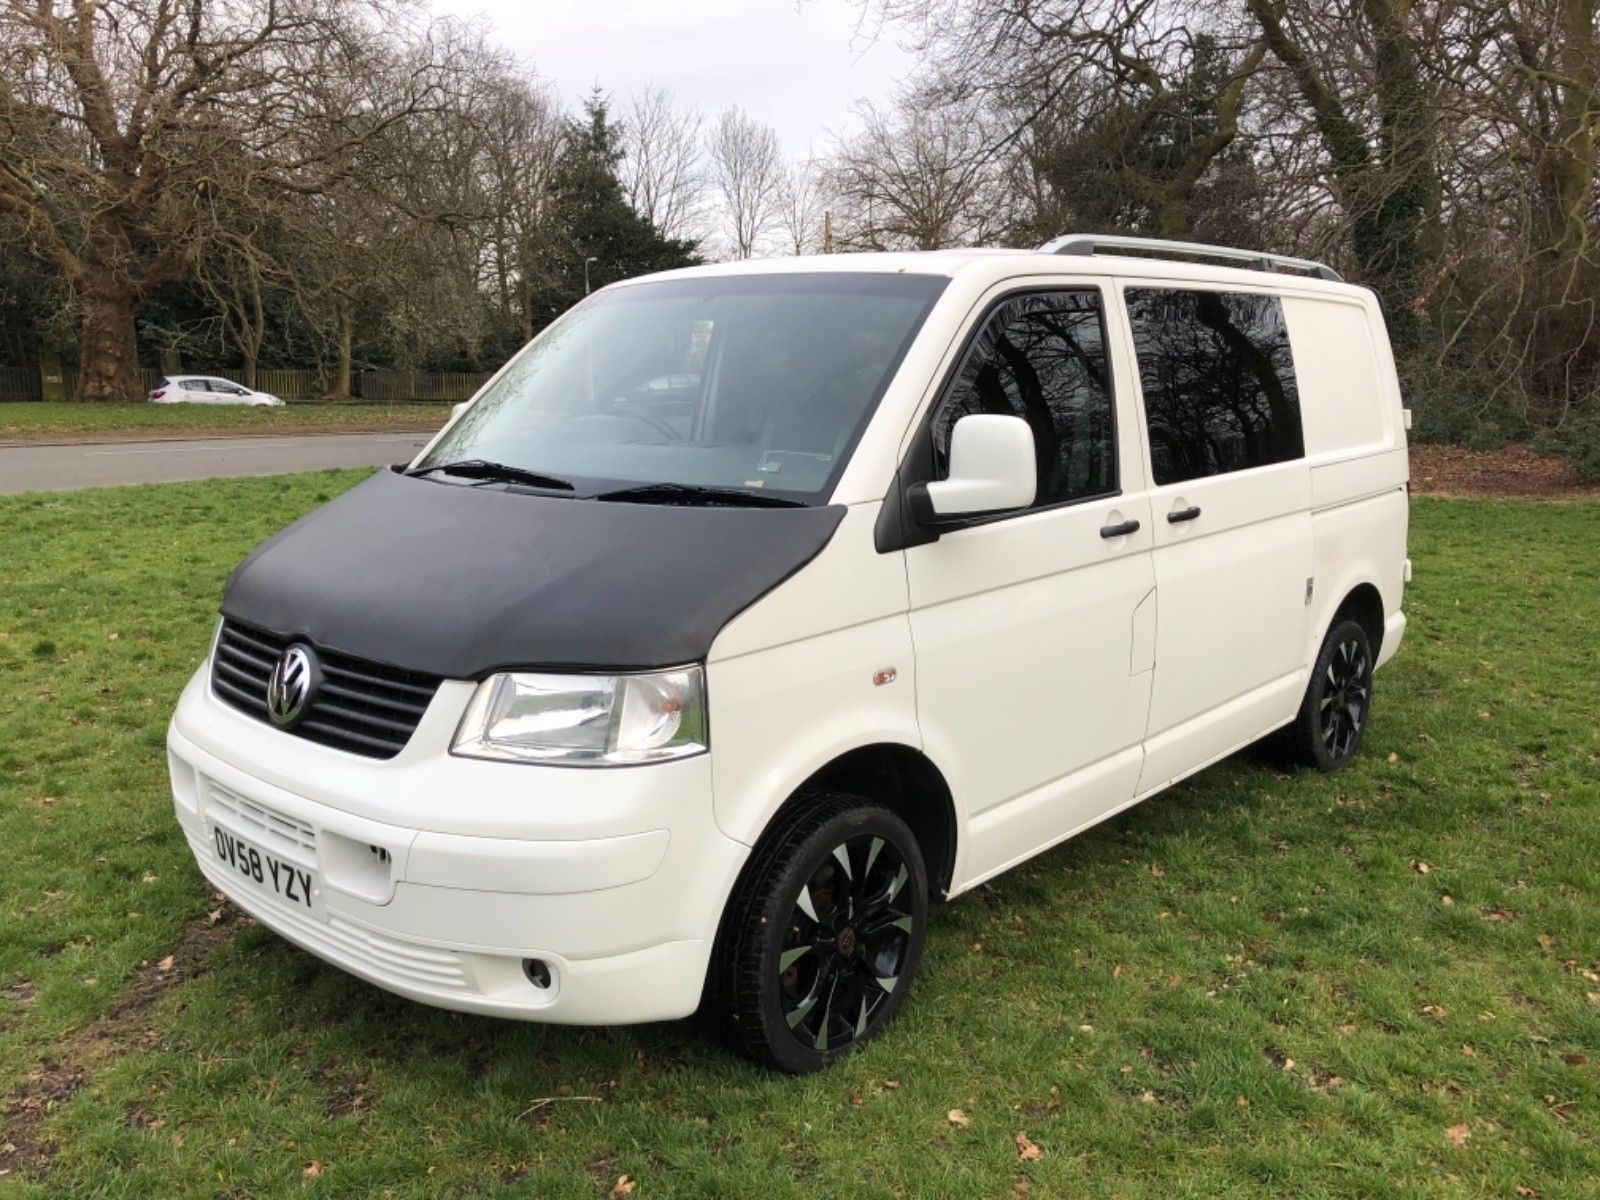 Ford Galaxy Camper Conversion >> 2008 58 Volkswagen Transporter T5 Camper Conversion Light Damaged Salvage | Pinterest | T5 ...